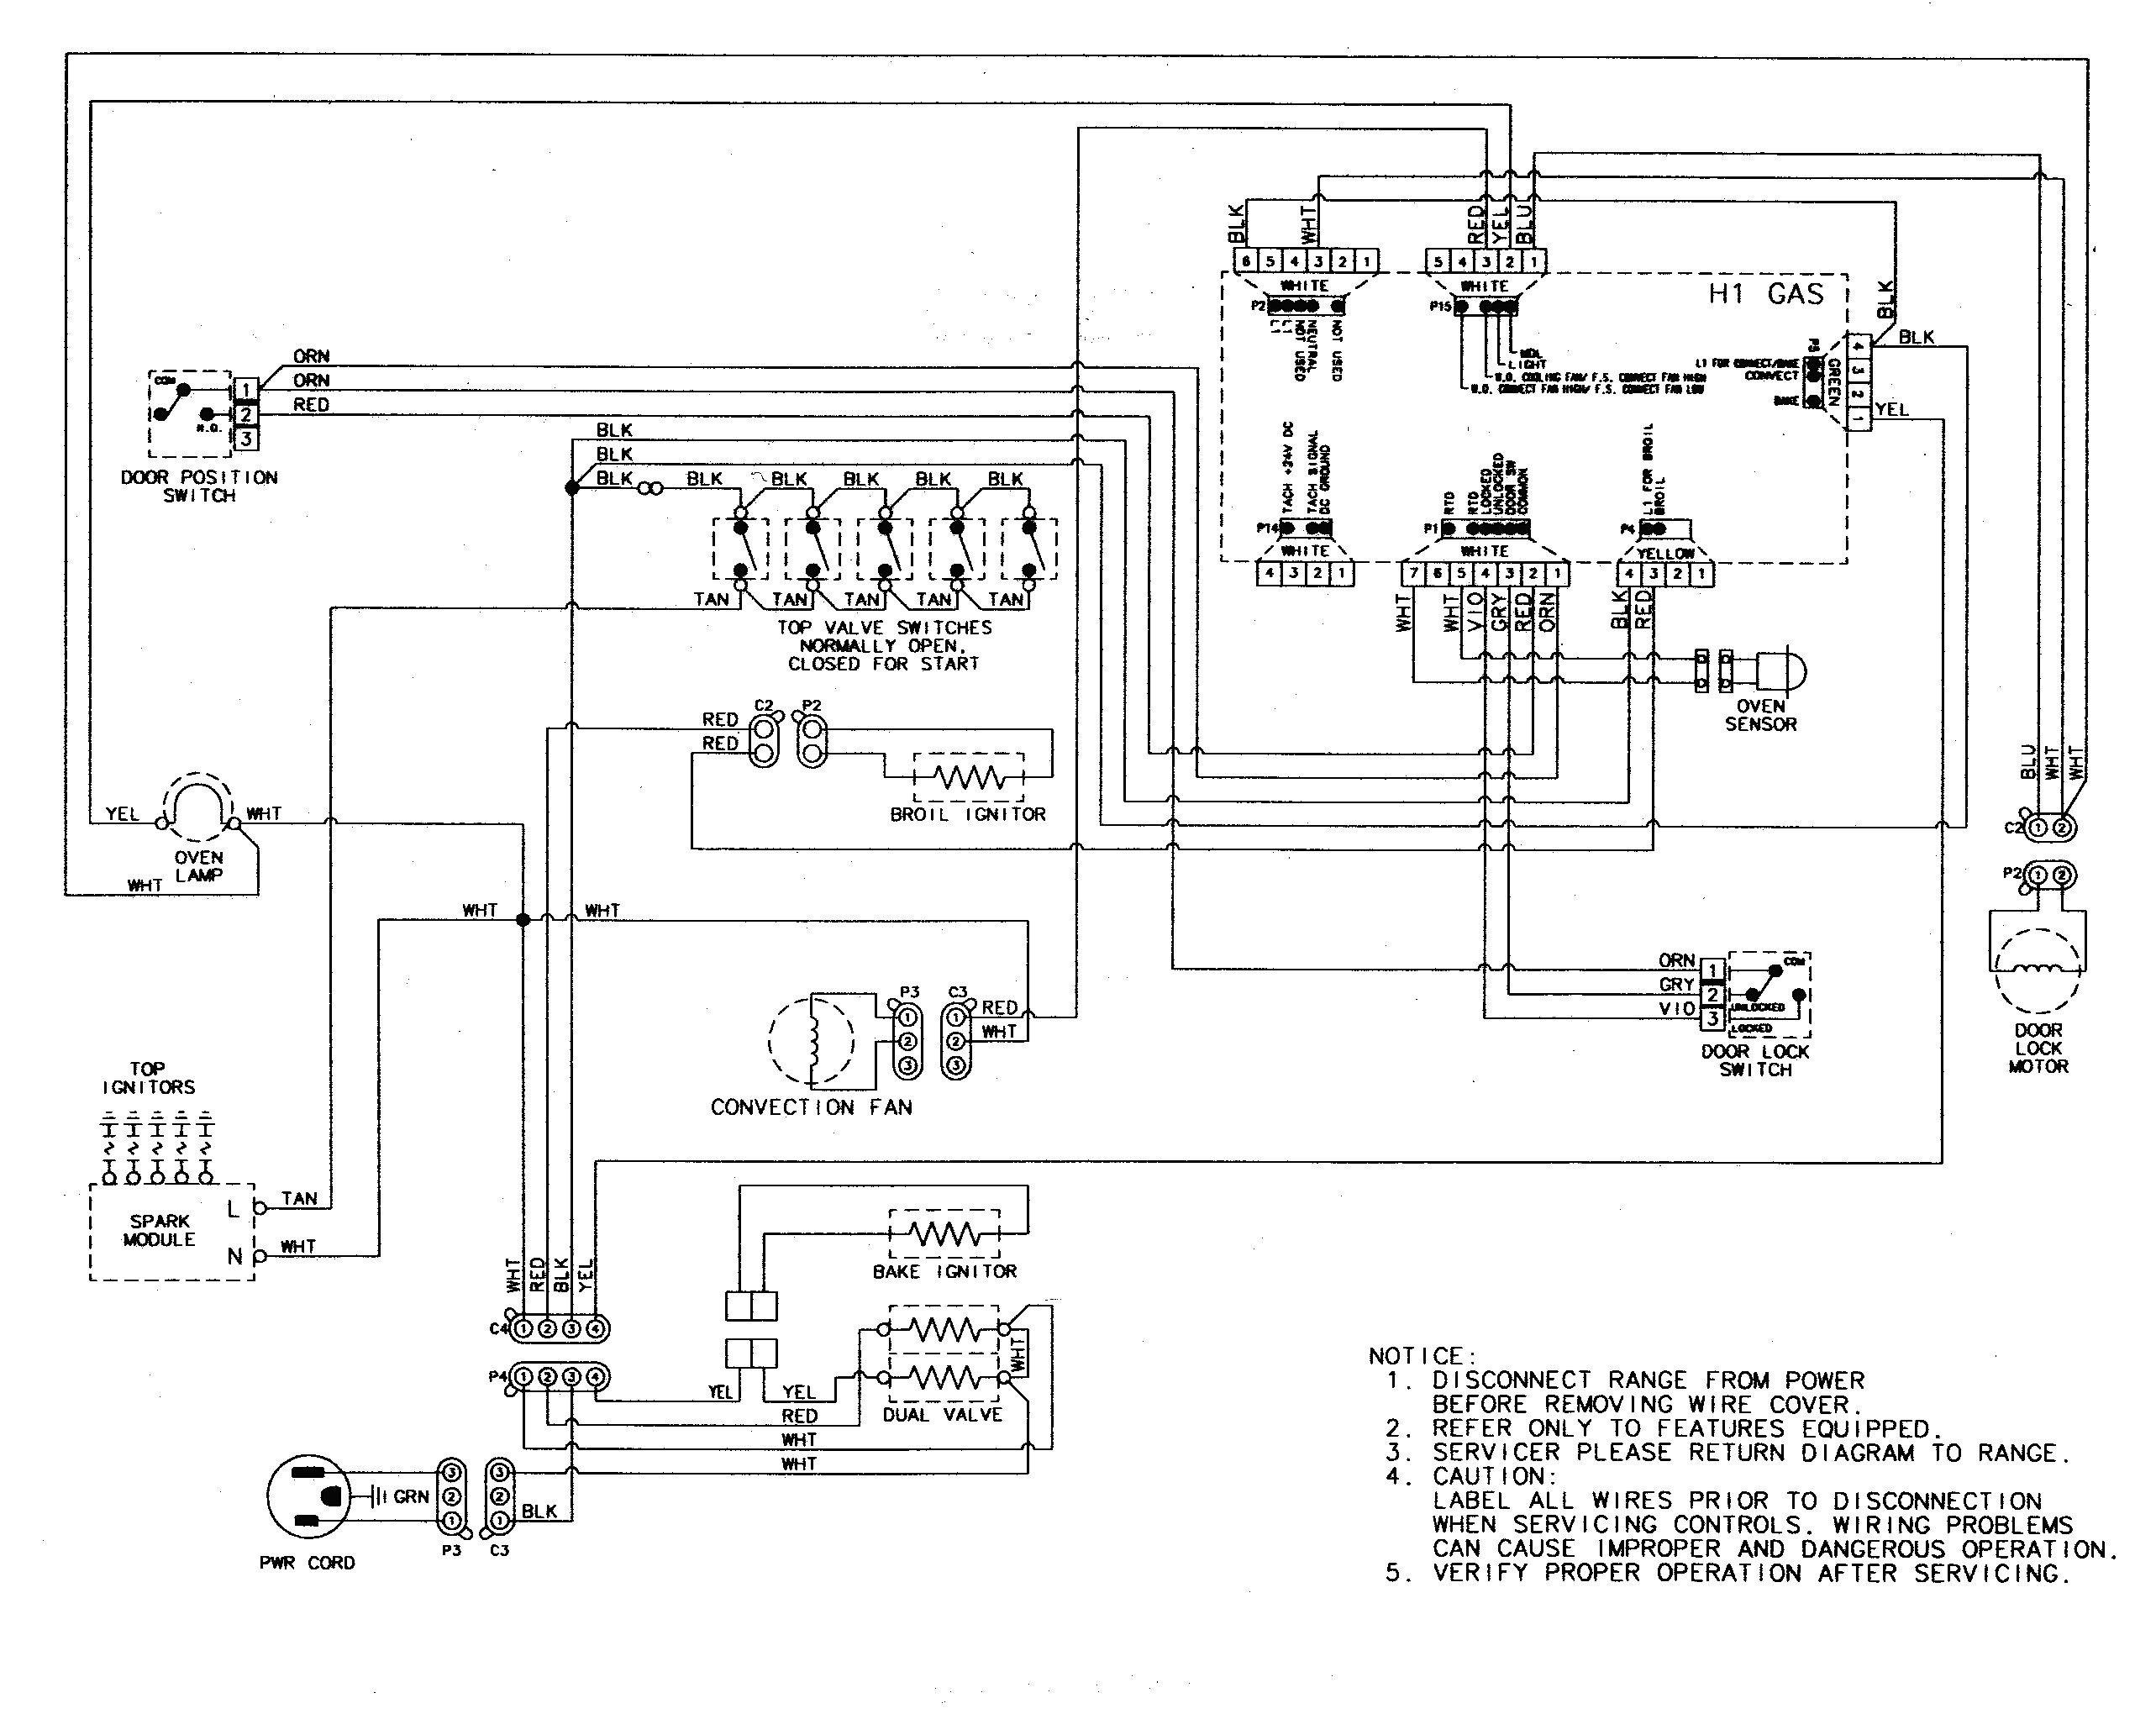 Amana Ptac Wiring Diagrams Library Heat Thermostat New Diagram Image Rh Mainetreasurechest Com At Bmw E39